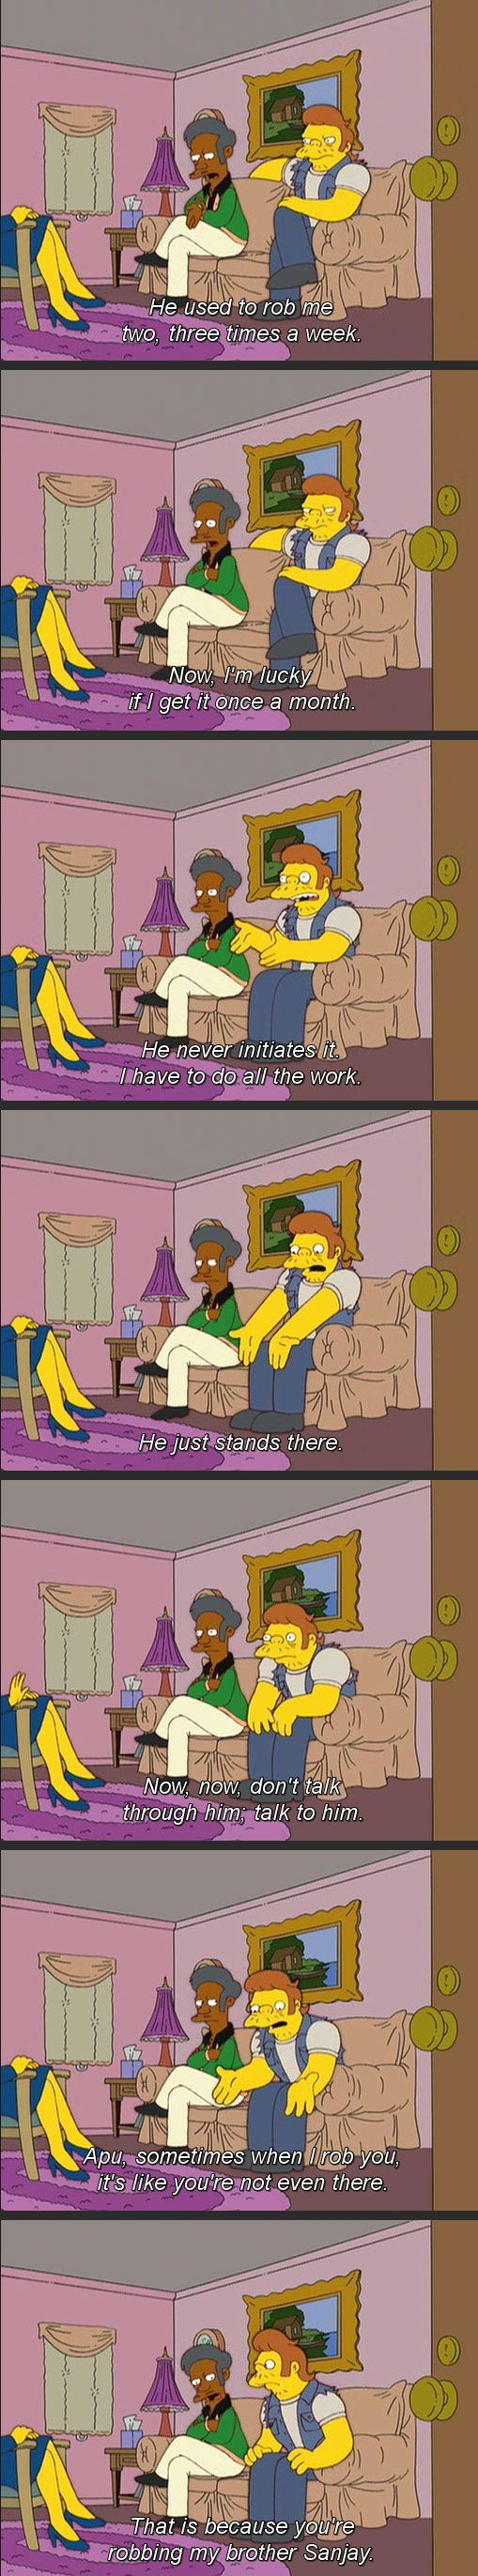 One-of-my-favorite-moments-in-The-Simpsons-15bda0.jpg 509×2,743 pixels